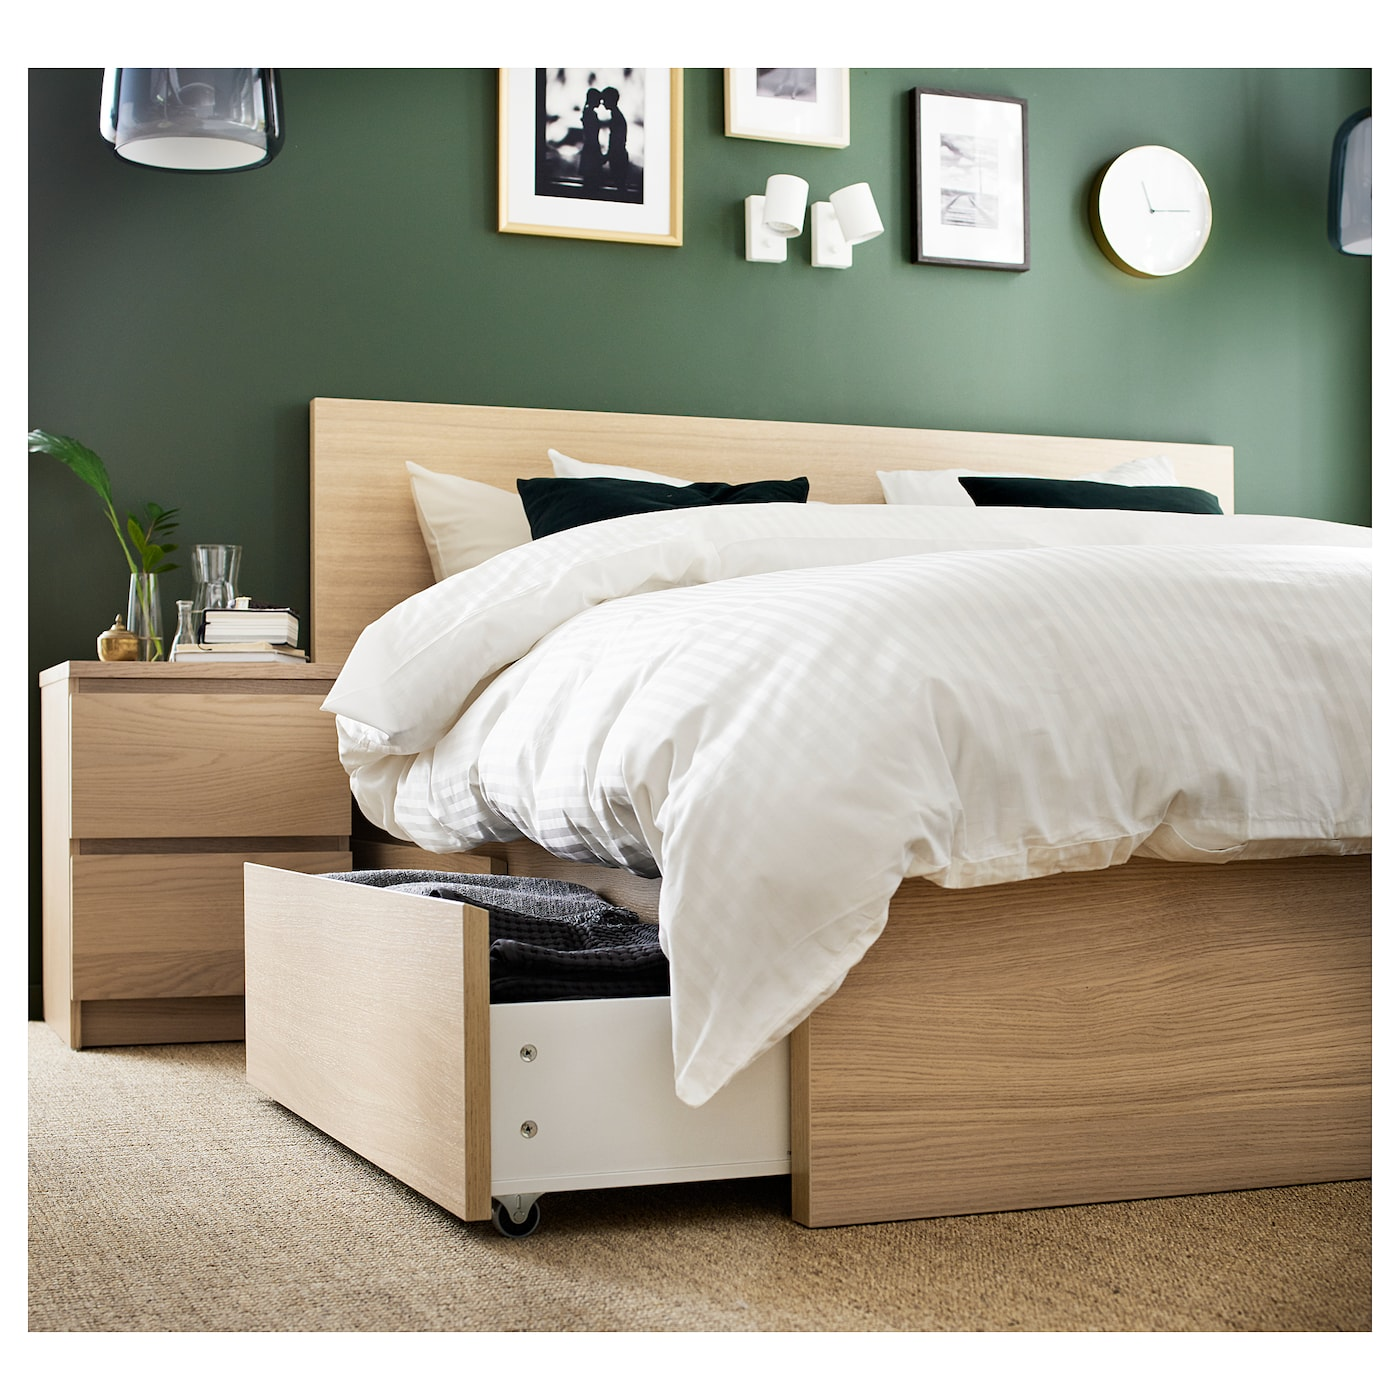 Malm High Bed Frame 4 Storage Boxes White Stained Oak Veneer Queen Ikea